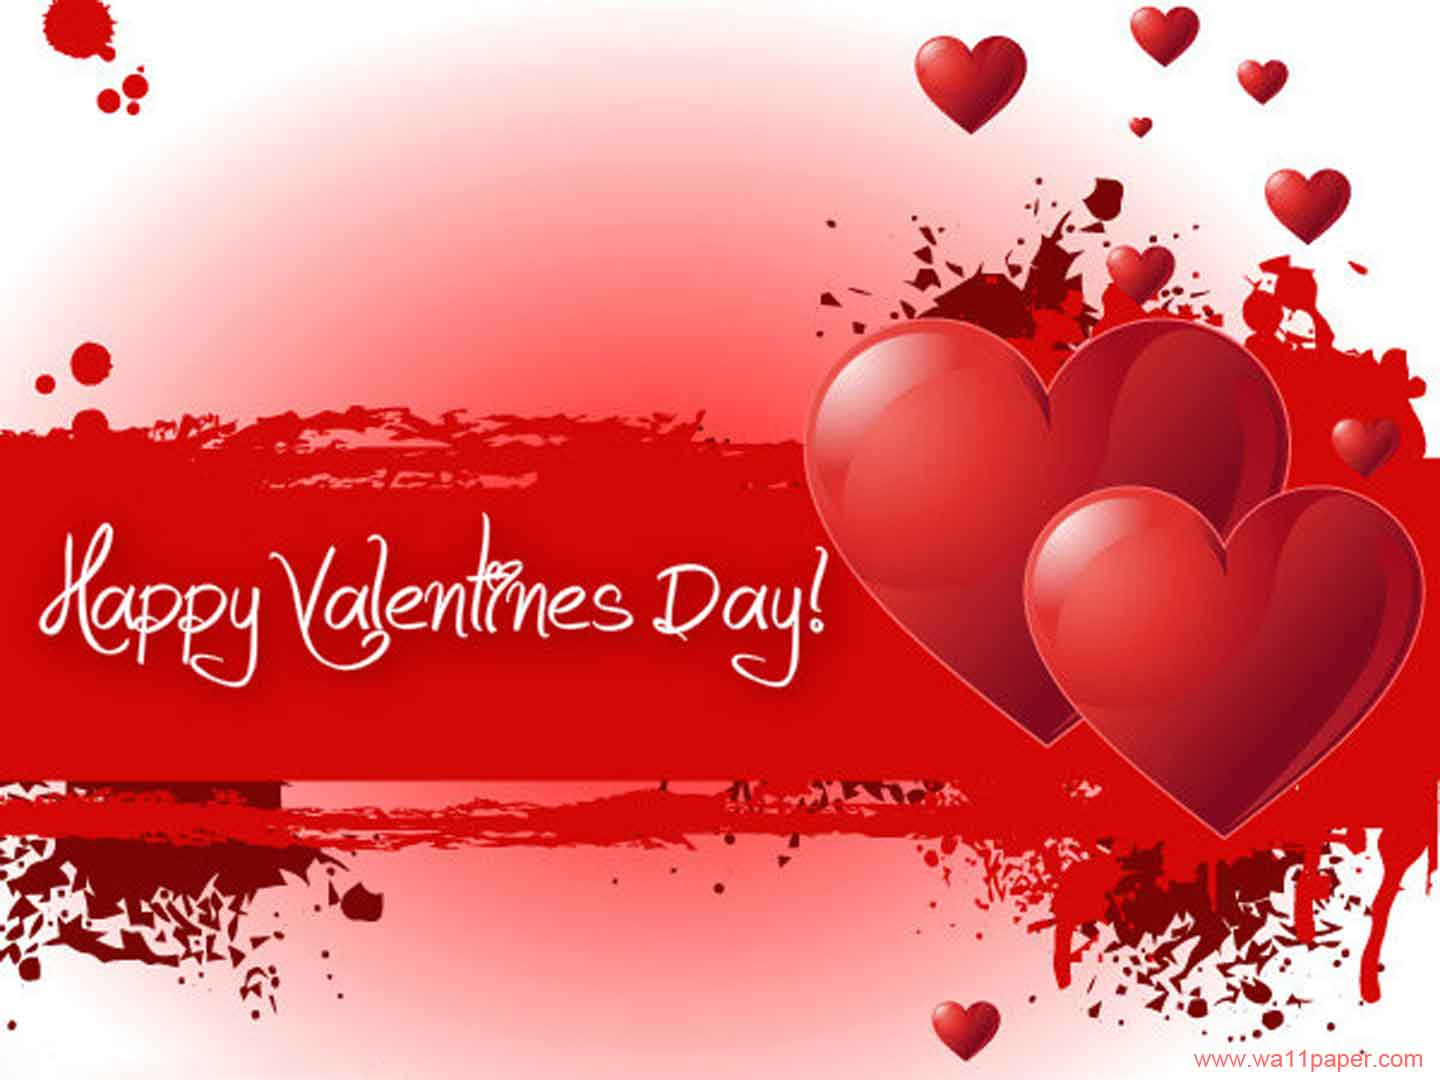 Valentines Day Greeting Cards. 1440 x 1080.Thanksgiving Day 123 Free Greeting Cards Love